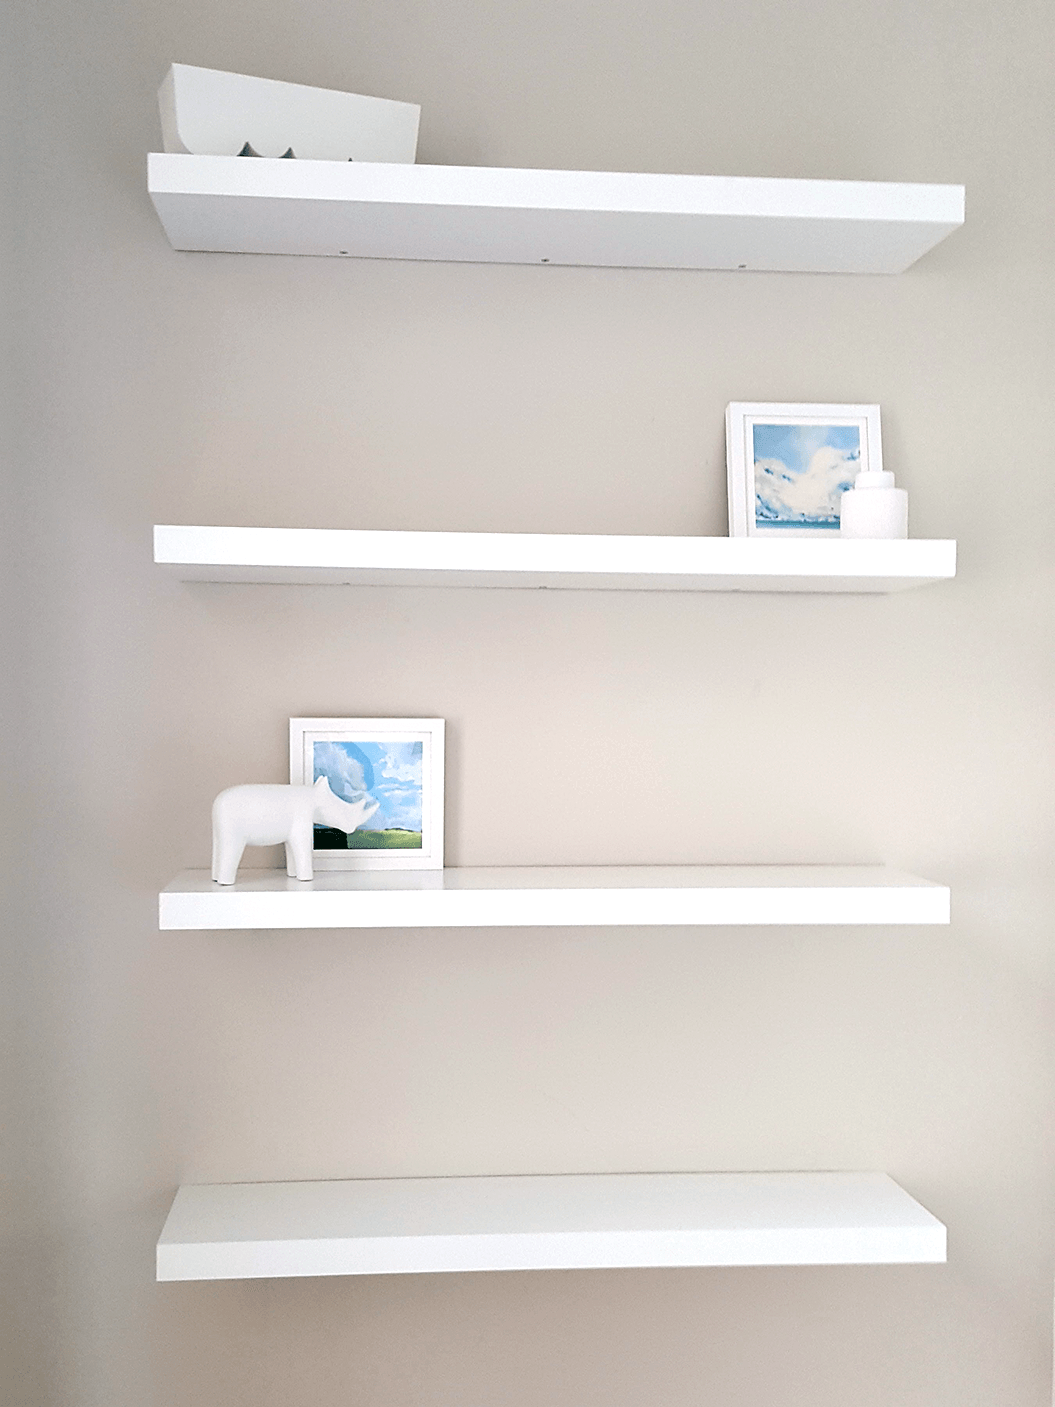 ikea shelves wall mounting service ikea delivery and assembly service in brooklyn and nyc. Black Bedroom Furniture Sets. Home Design Ideas